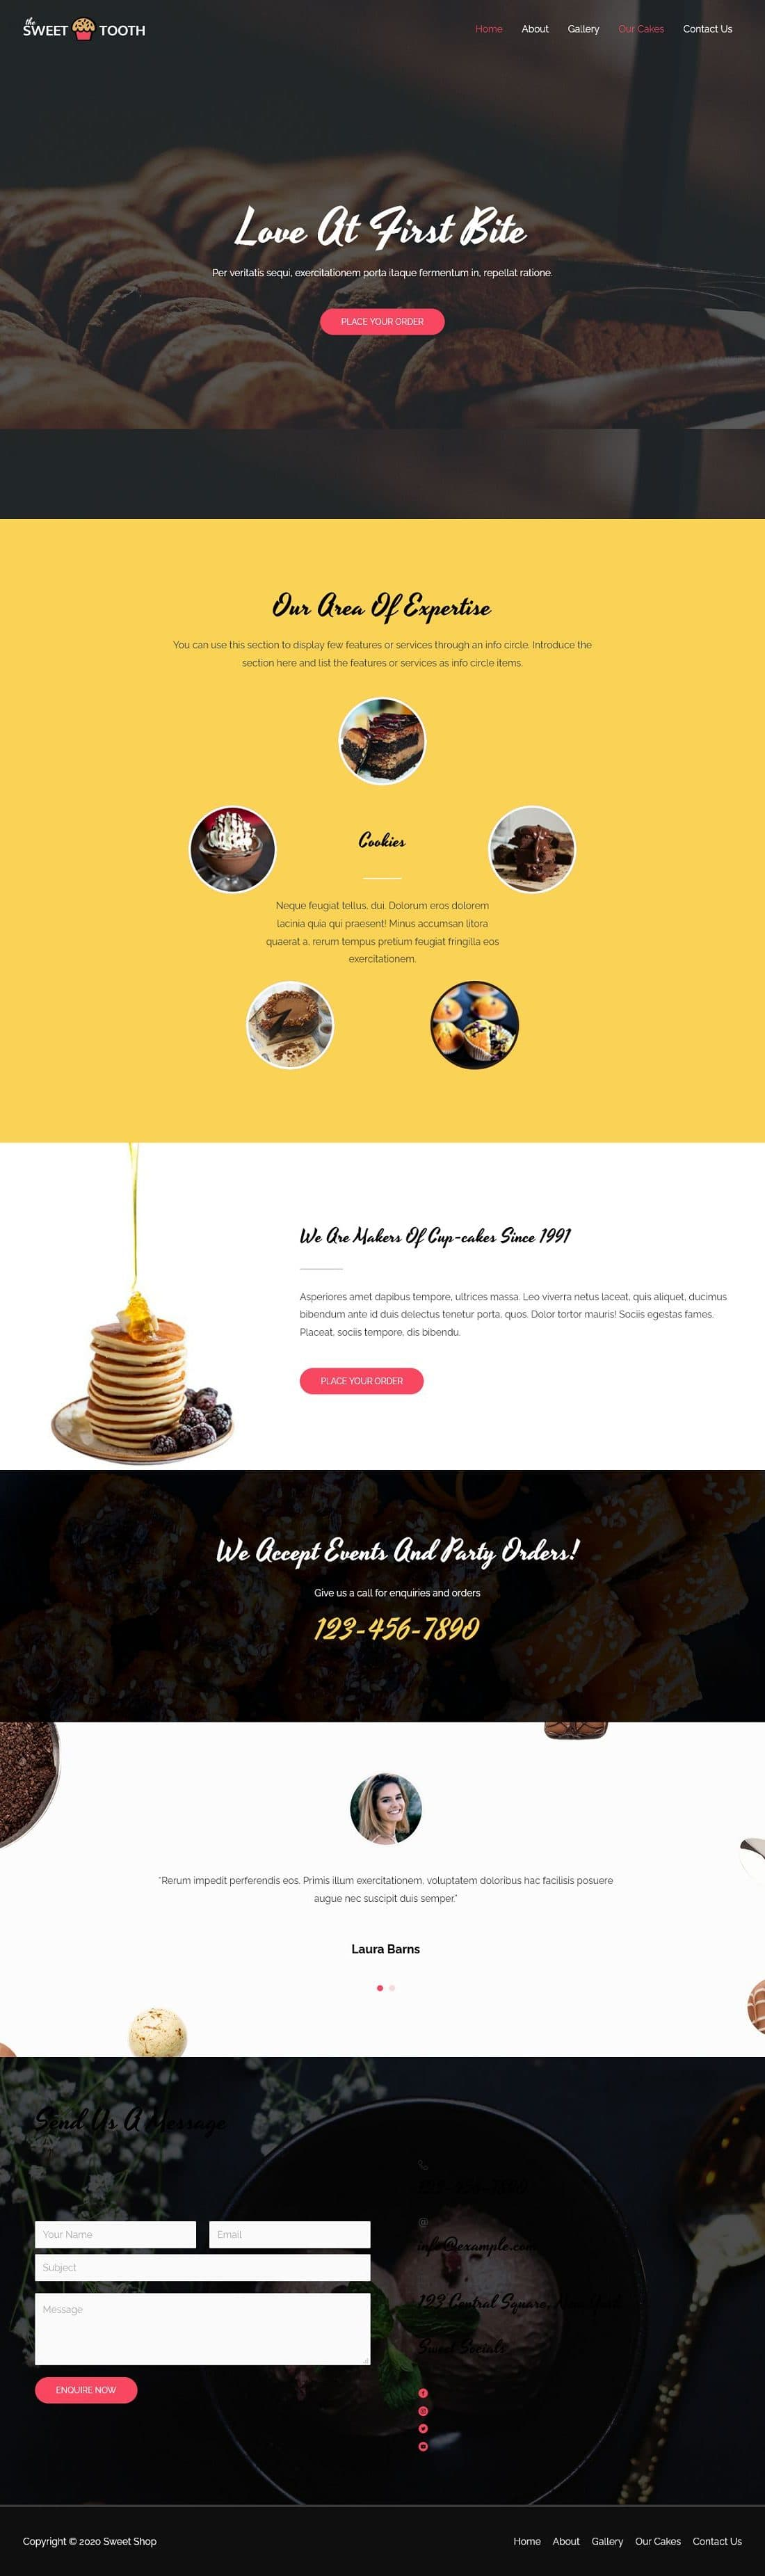 Sweet Shop Bakery Cakes A - Multipurpose - Home Page 1280 x 3703